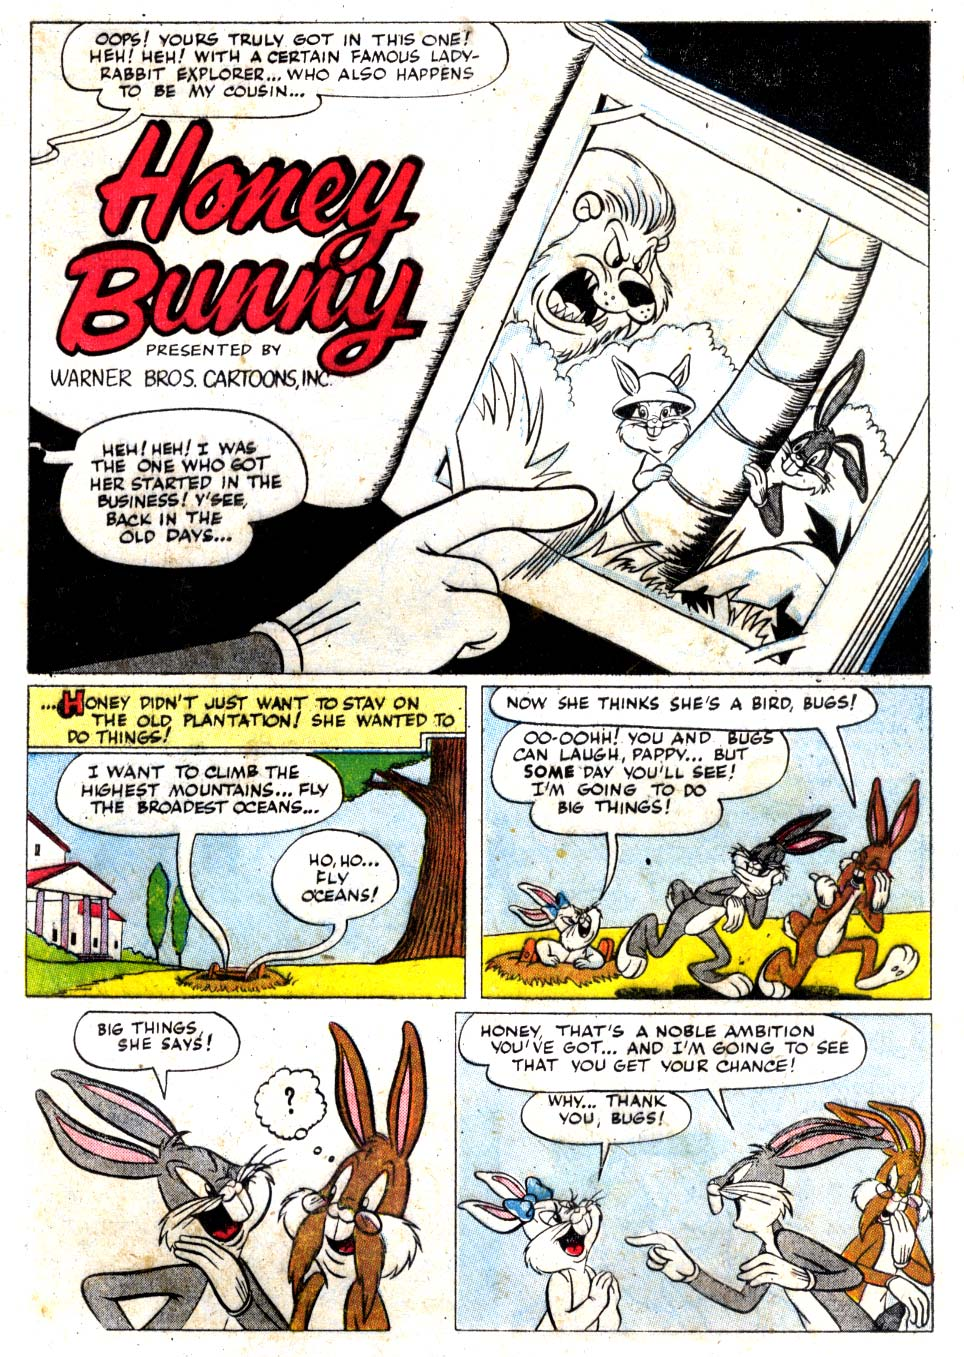 Honey Bunny (Bugs Bunny's Album 1953)